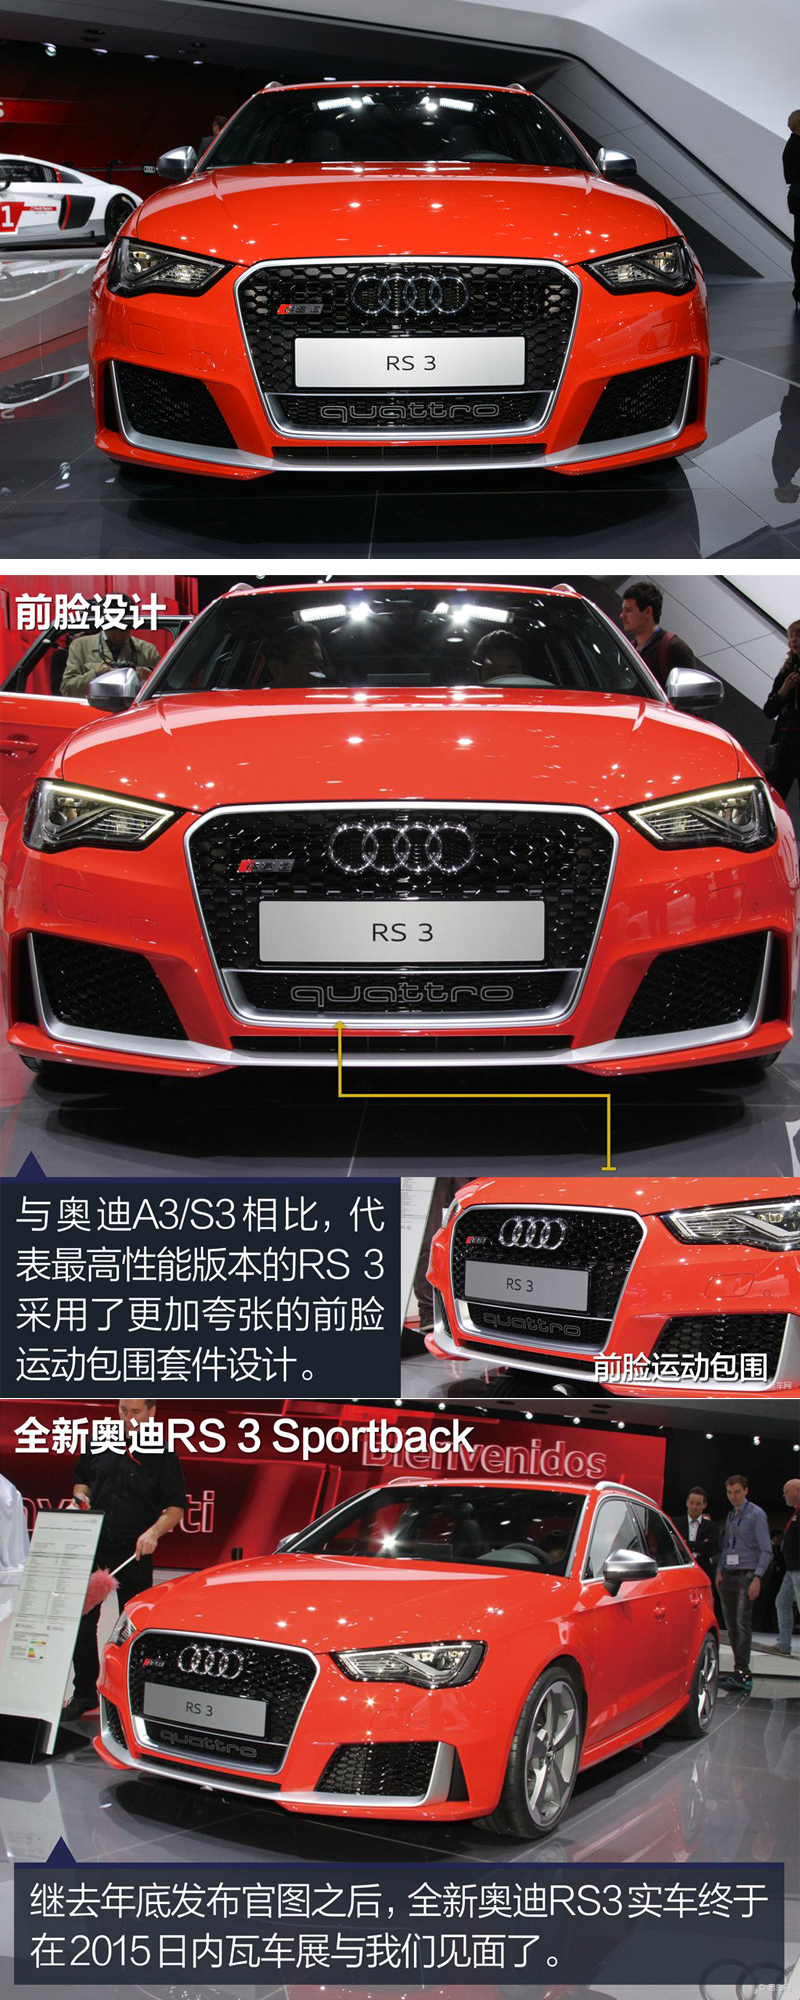 ABS Full glossy black frame RS3 sportback radiator mesh grille quattro grills front bumper honeycomb grill for audi A3 S3